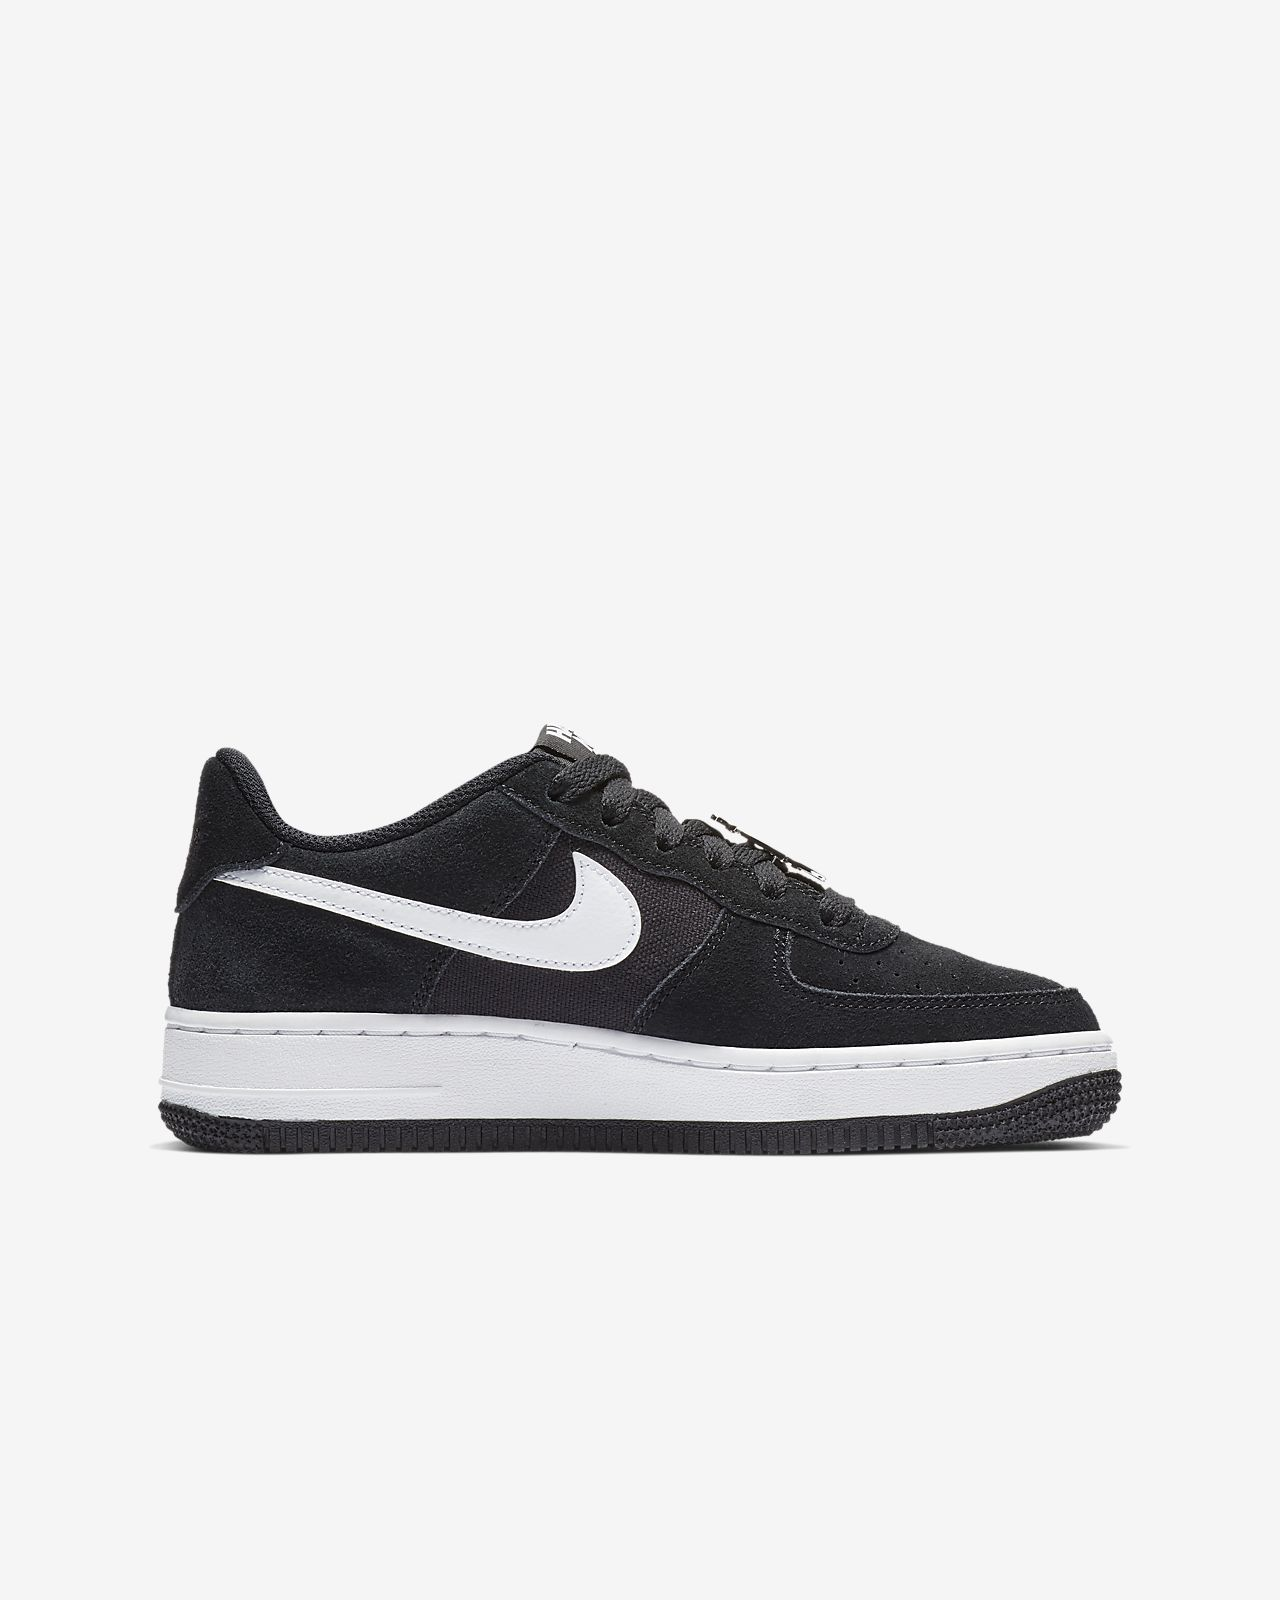 quality design 3ac38 bada3 ... Nike Air Force 1 LV8 Big Kids  Shoe